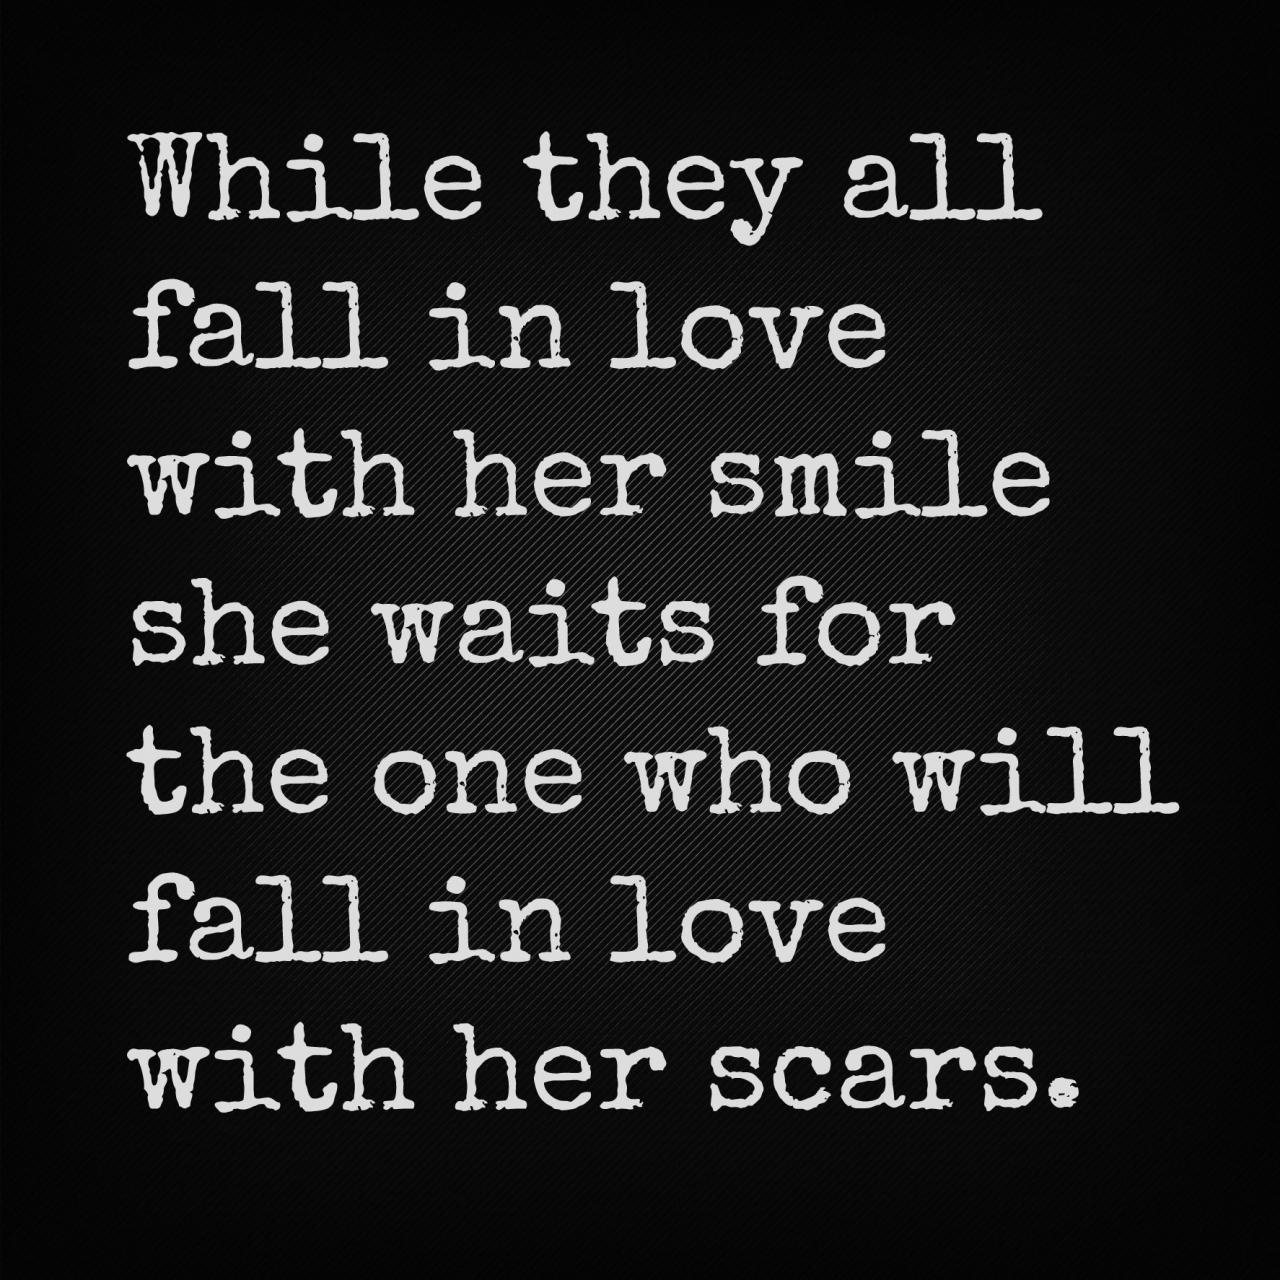 While They All Fall In Love With Her Smile She Waits For The One Who Will